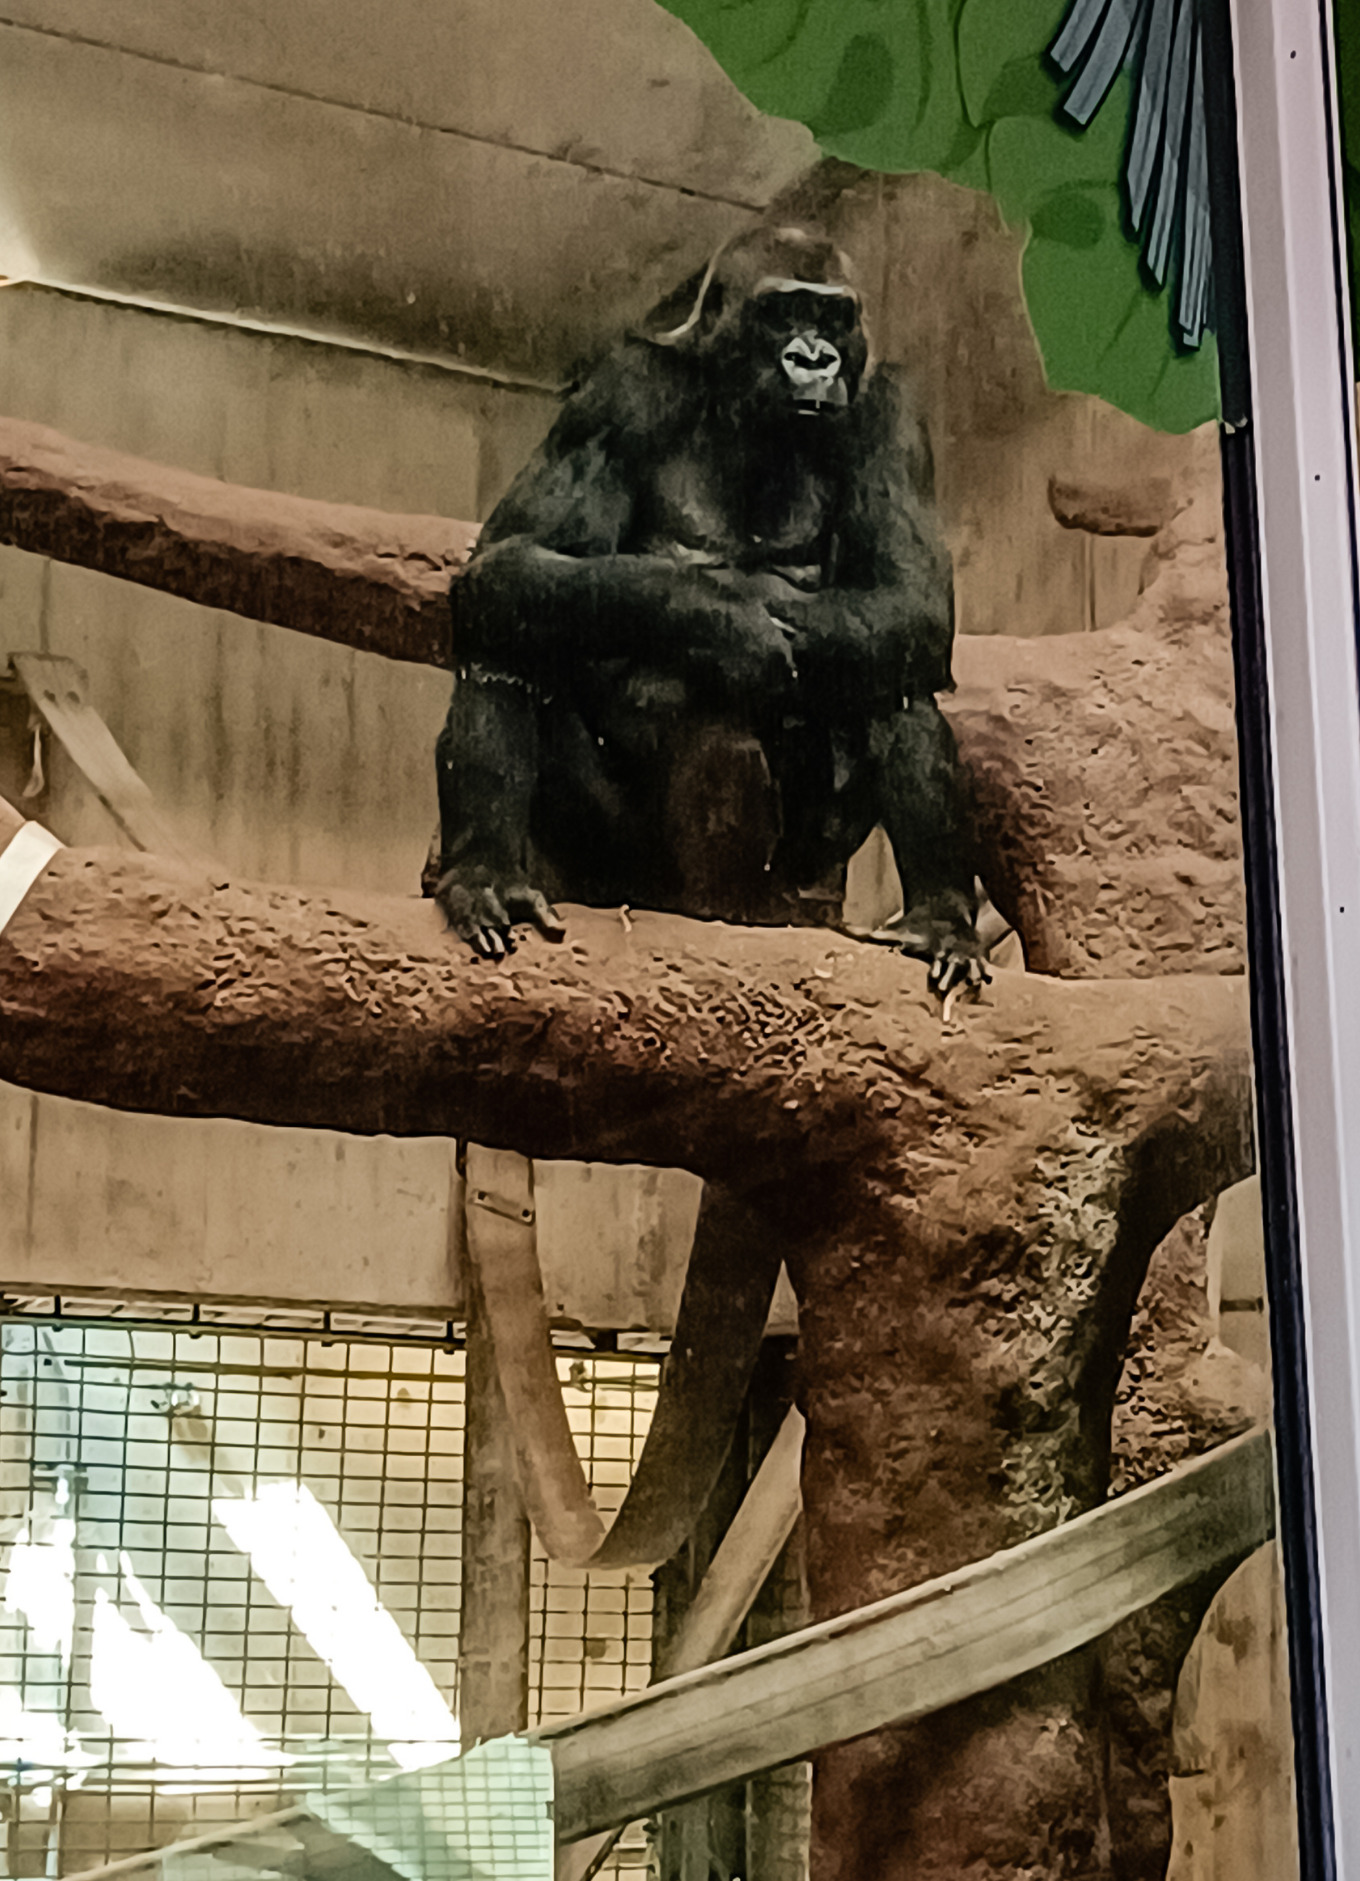 A female gorilla sits perched in a tree at Washington DC's National Zoo.